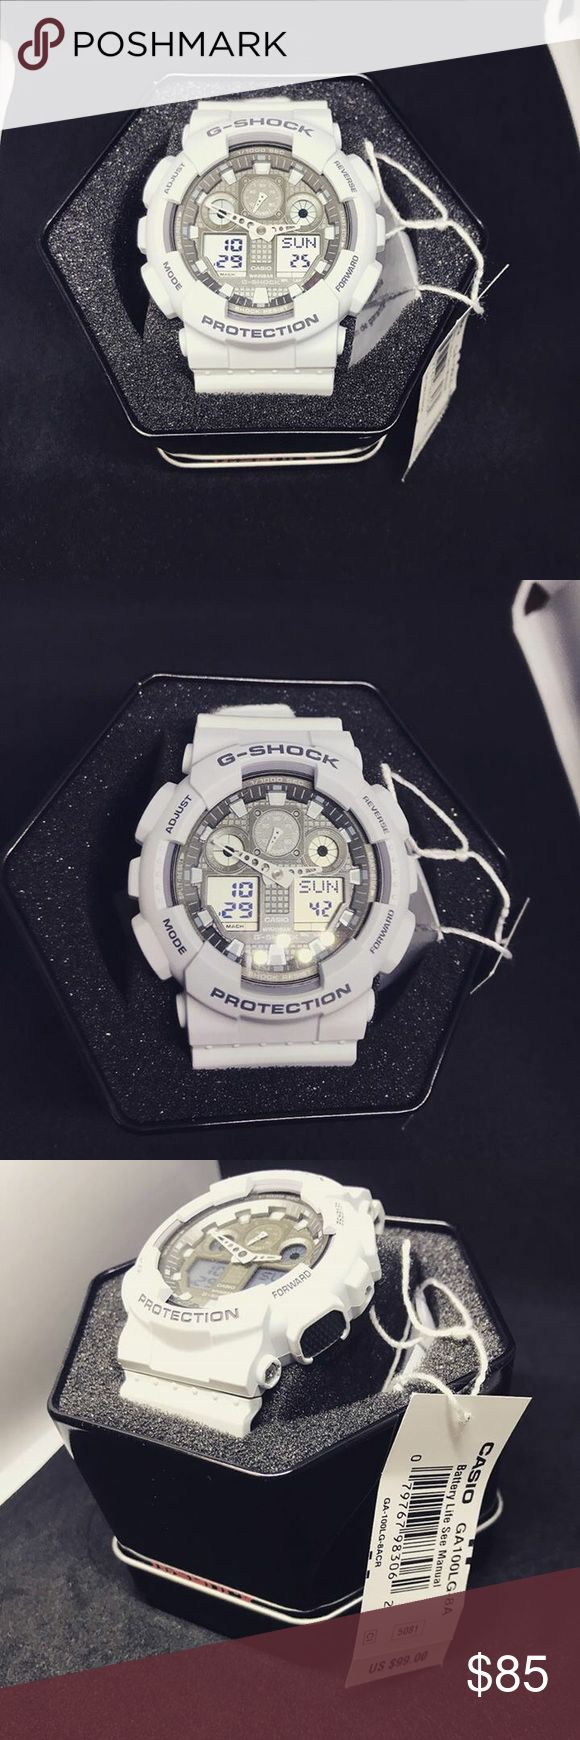 White G-Shock Watch Brand new, white g-shock!  Water proof and shatter proof!  Great for every day wear or for outdoor adventures Original box included Accessories Watches